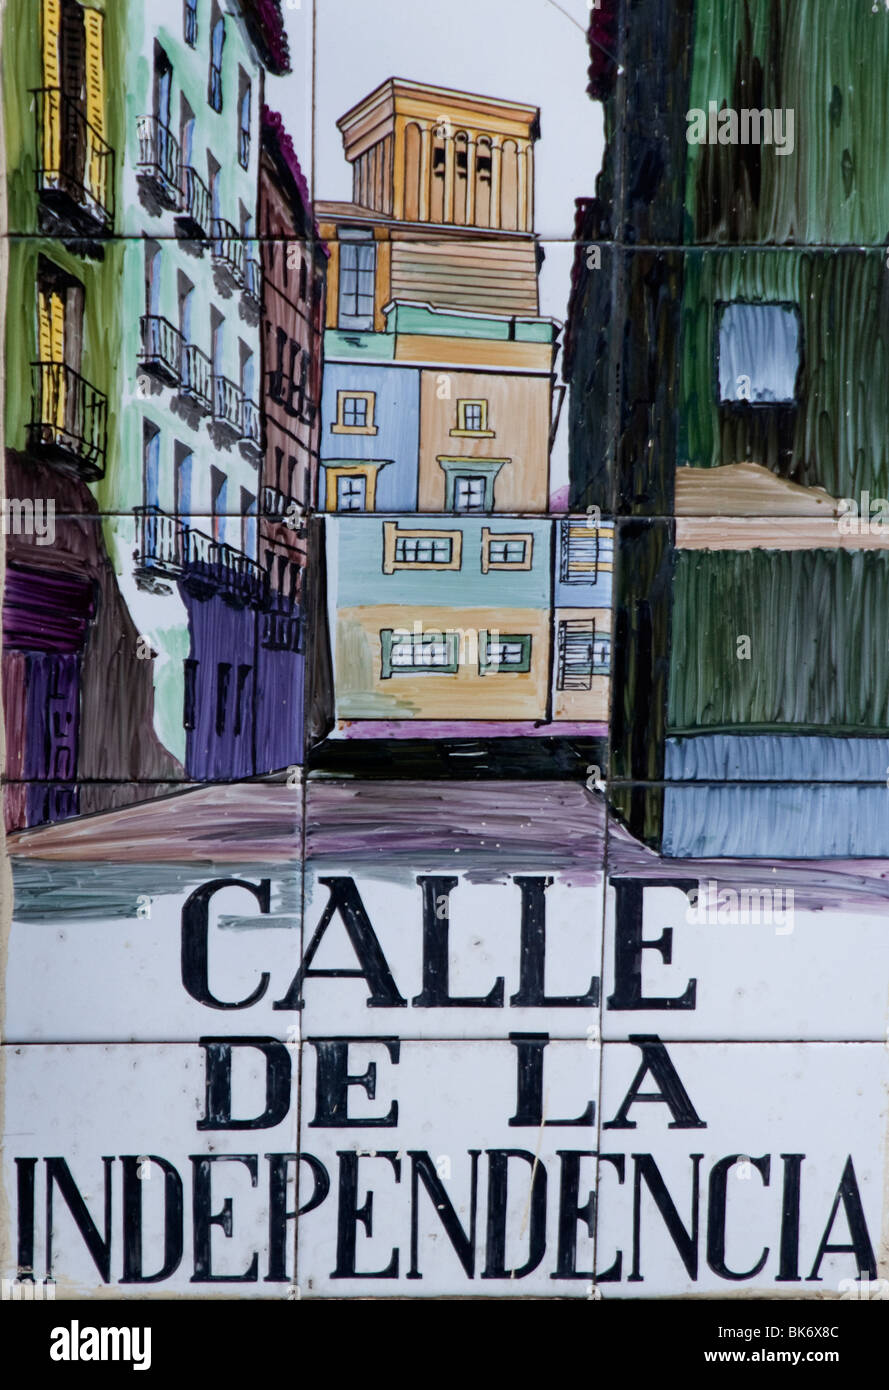 Calle del de la Independencia street of Independence  Madrid Spain street sign Name - Stock Image